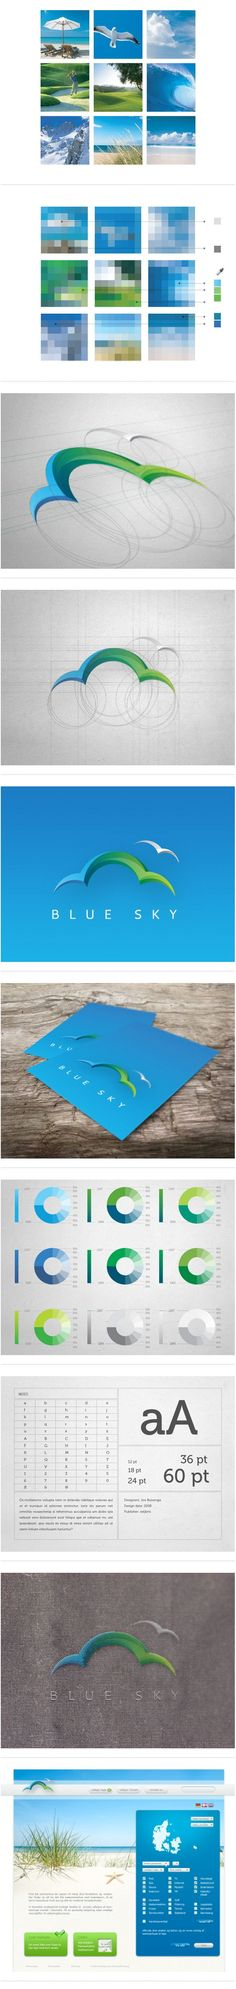 Blue Sky branding and logo design process